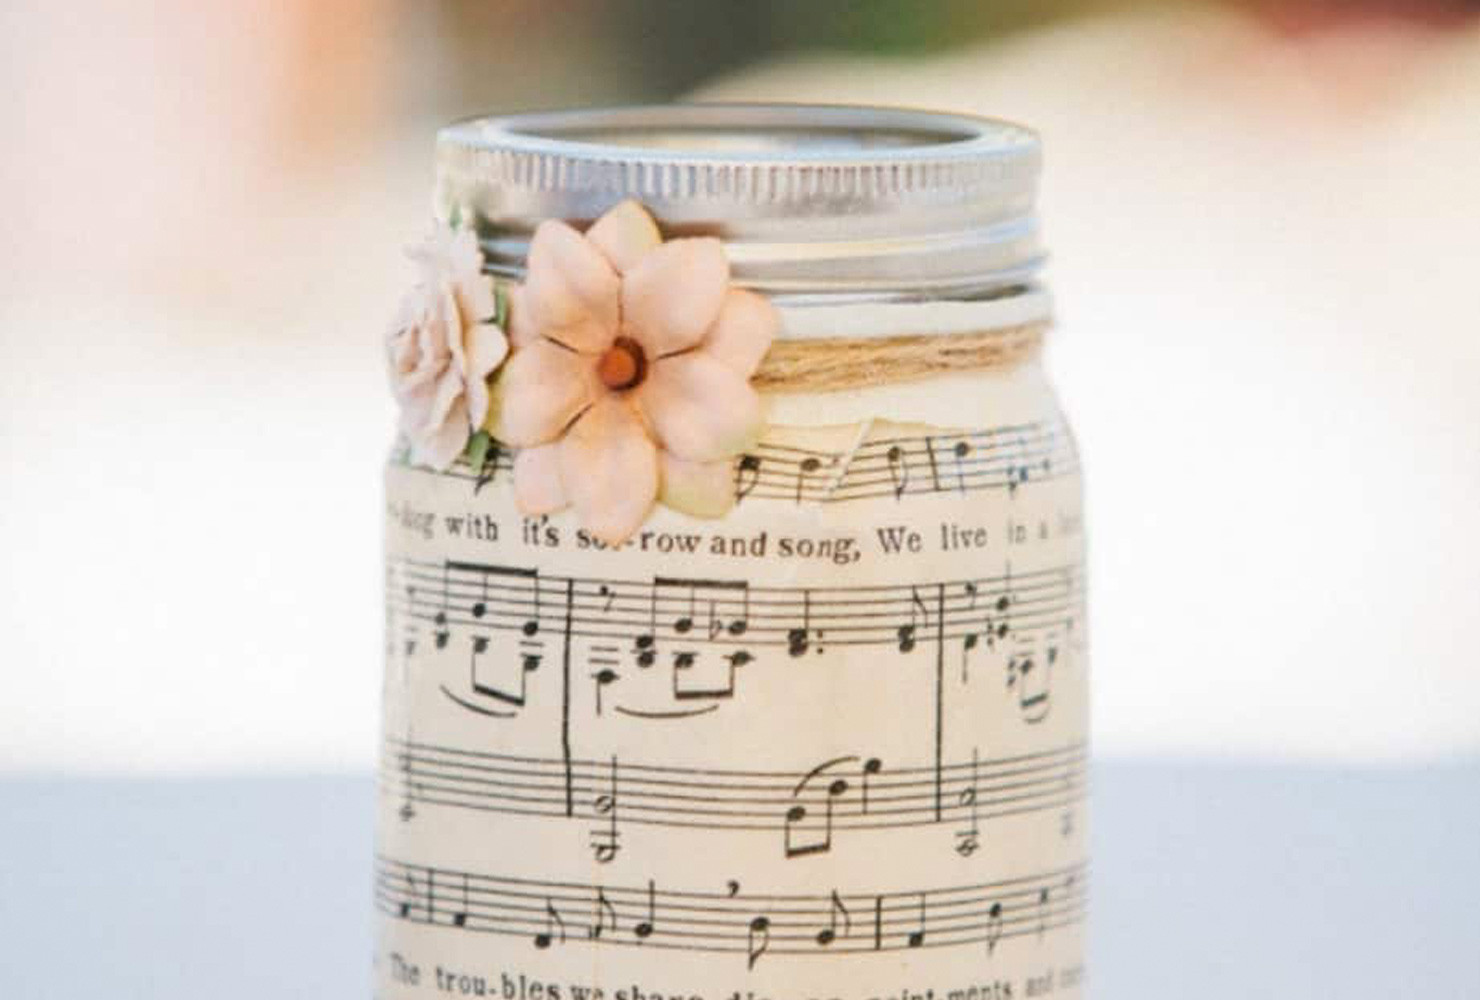 Best ideas about DIY Gifts For Music Lovers . Save or Pin 24 Creative Gifts for Music Lovers Now.